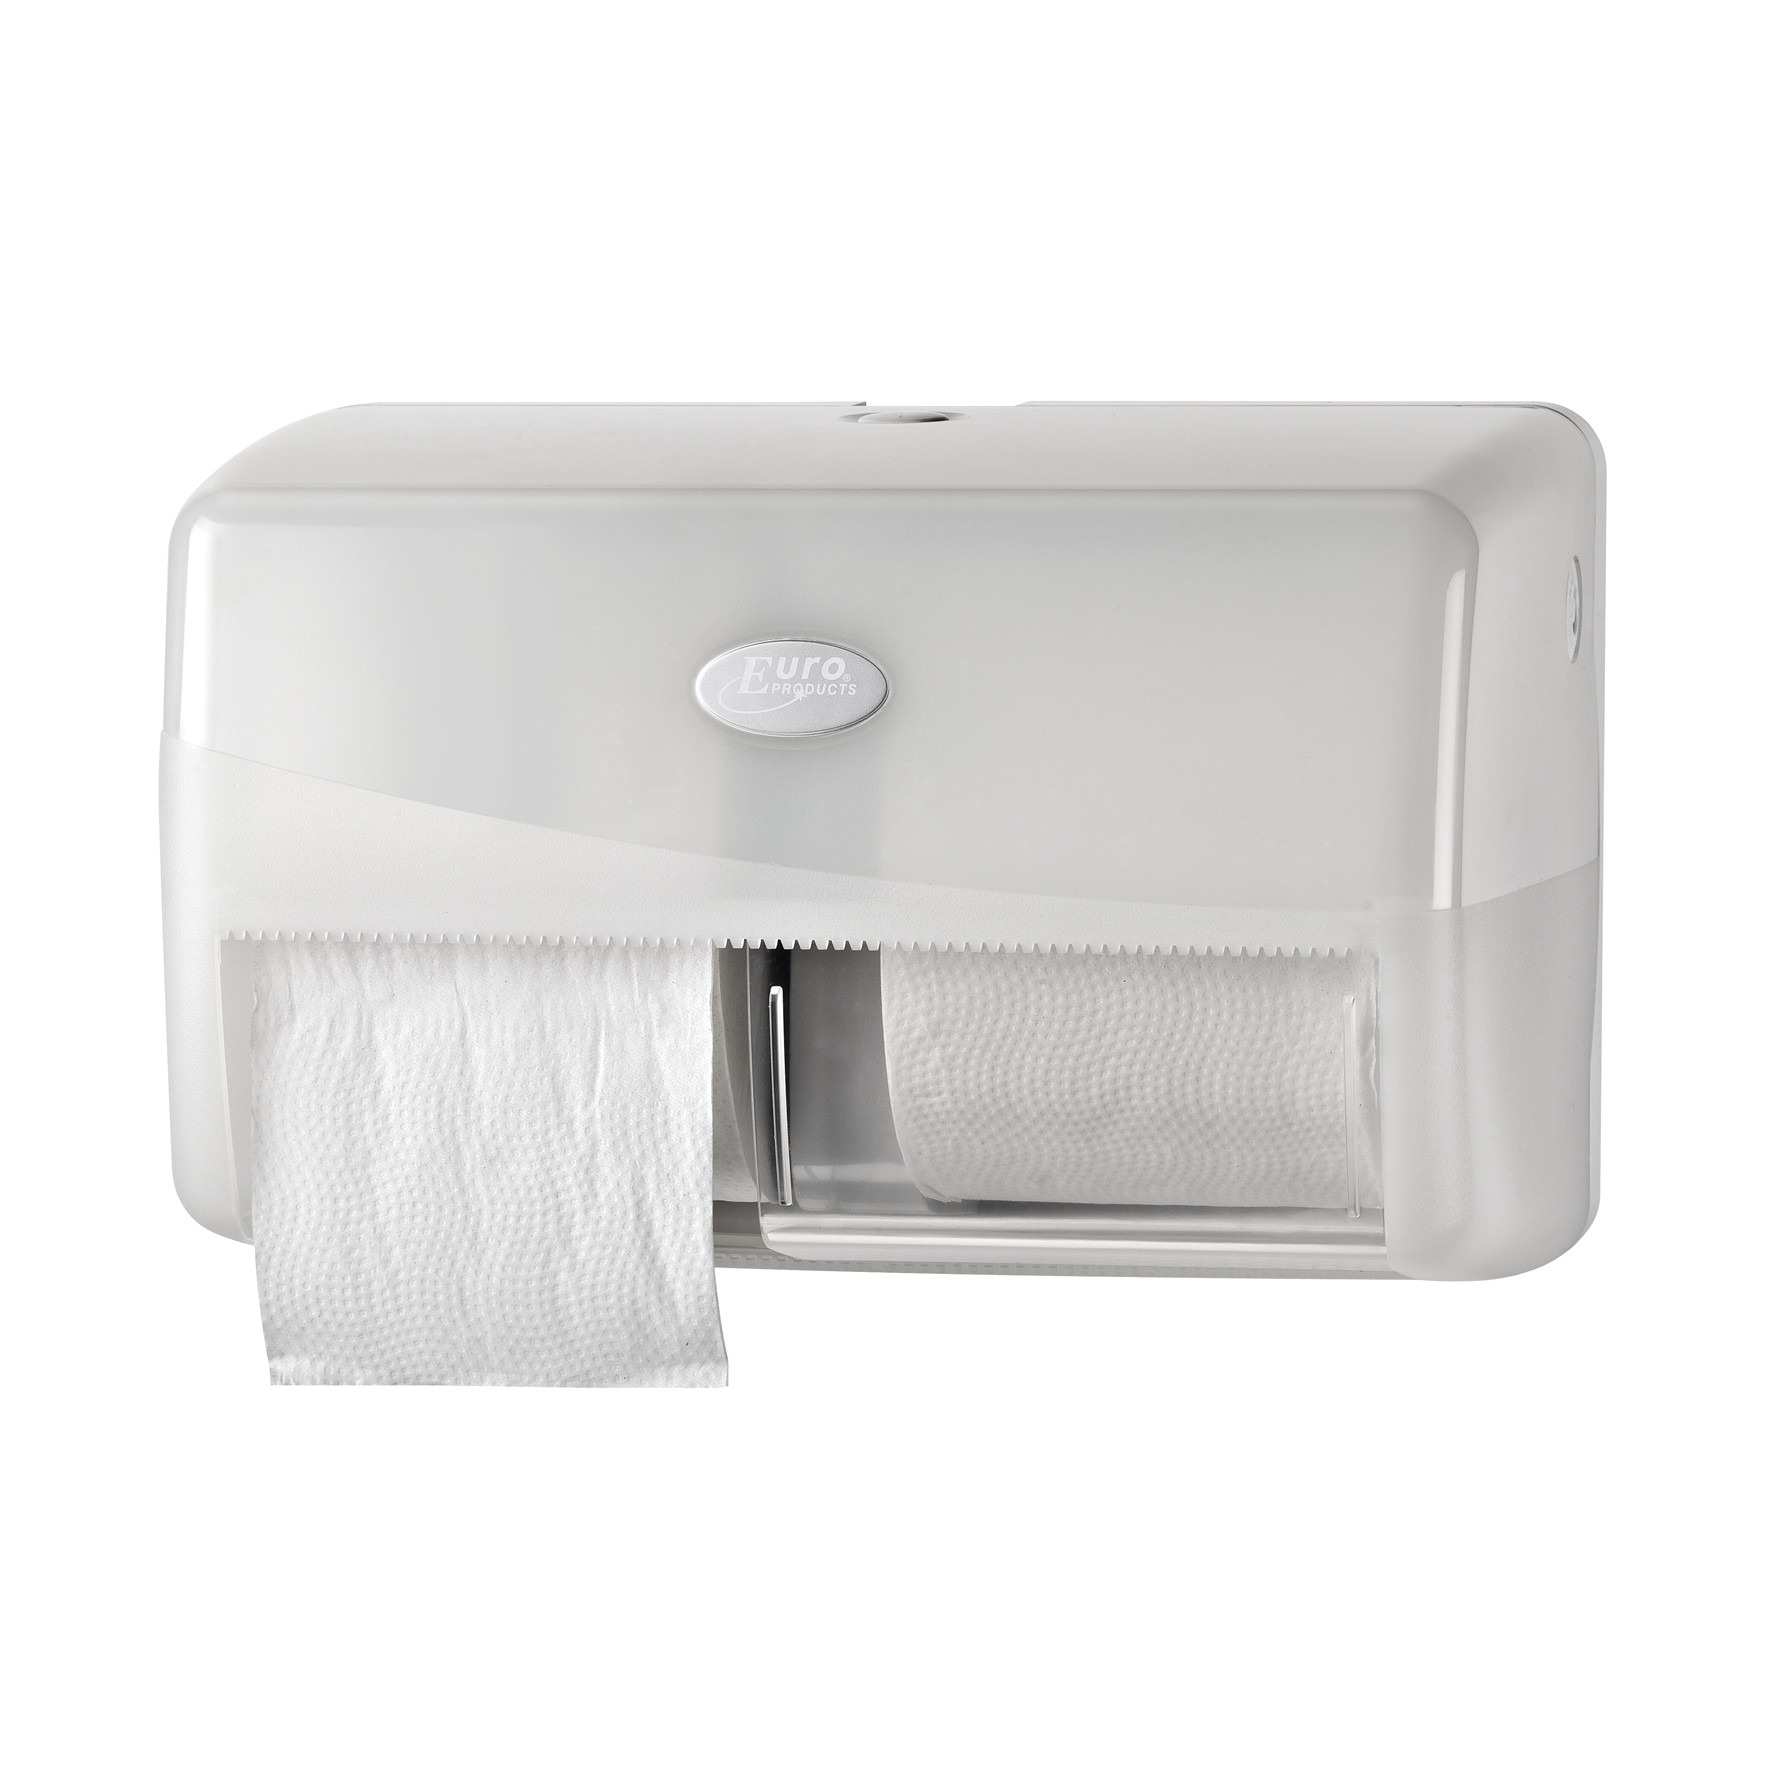 Pearl White Duo toiletrolhouder compact